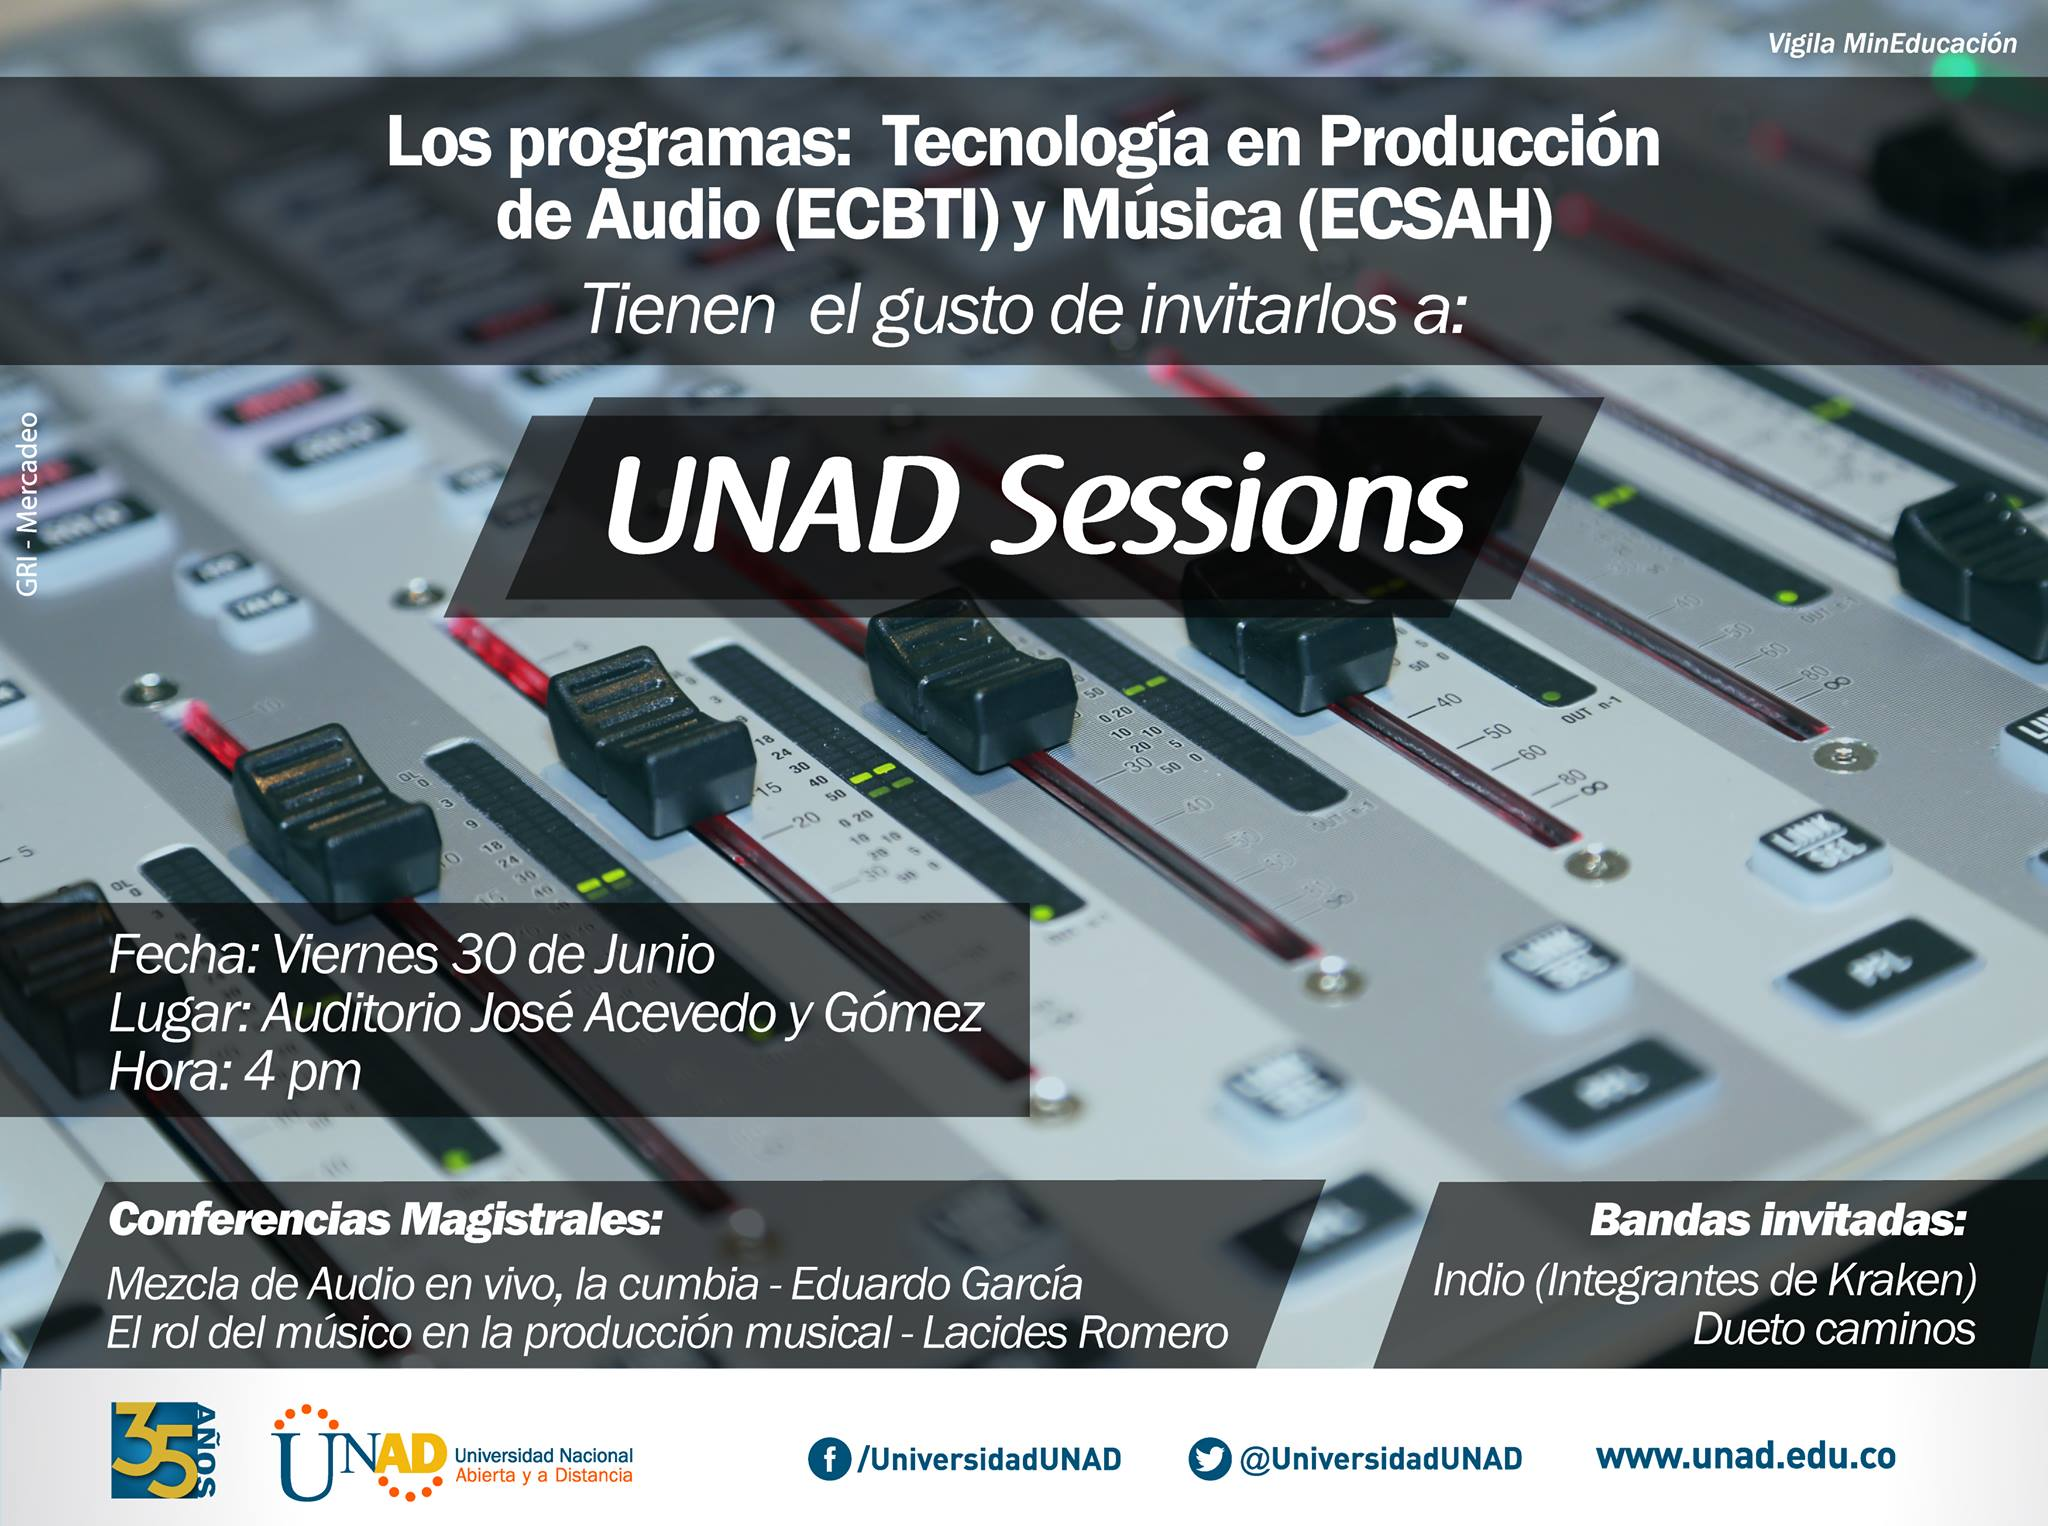 unad sessions